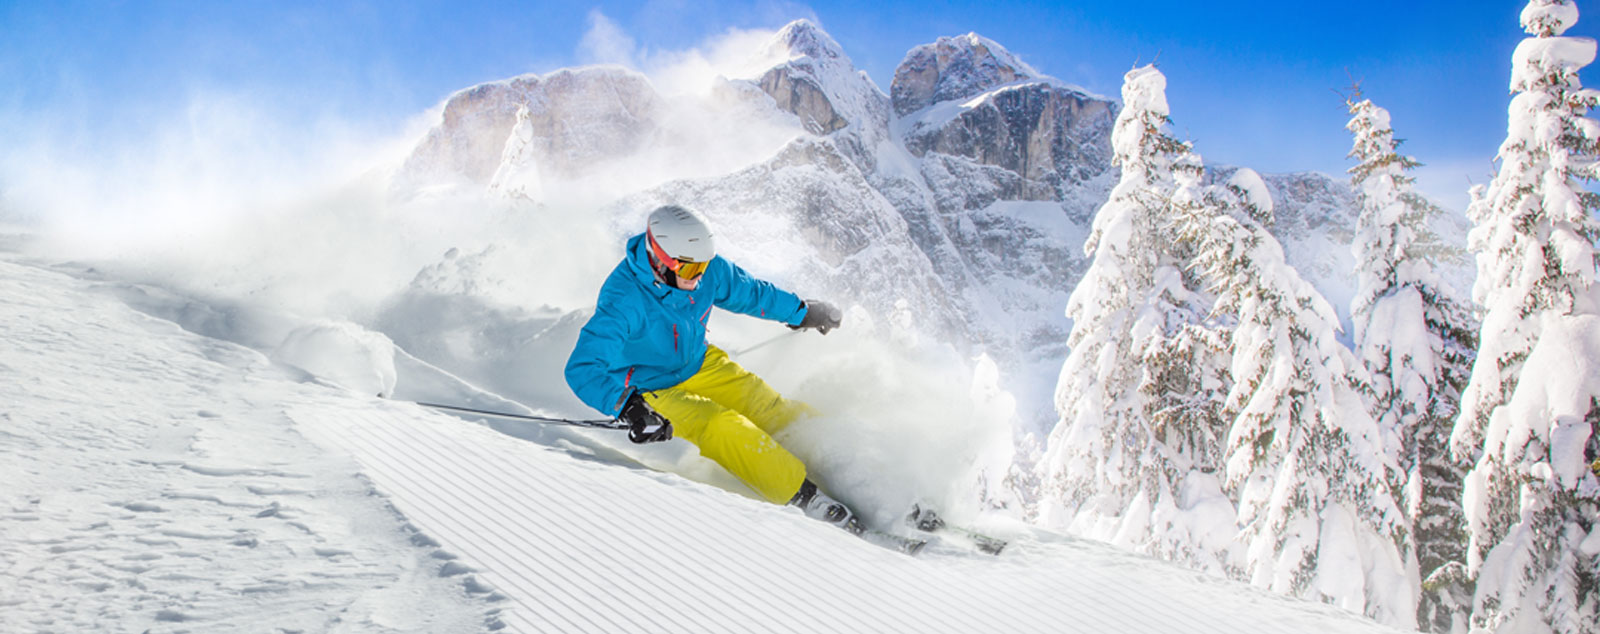 A skier making a parallel turn on a slope next to Alpine trees forms a large cloud of snow in his wake